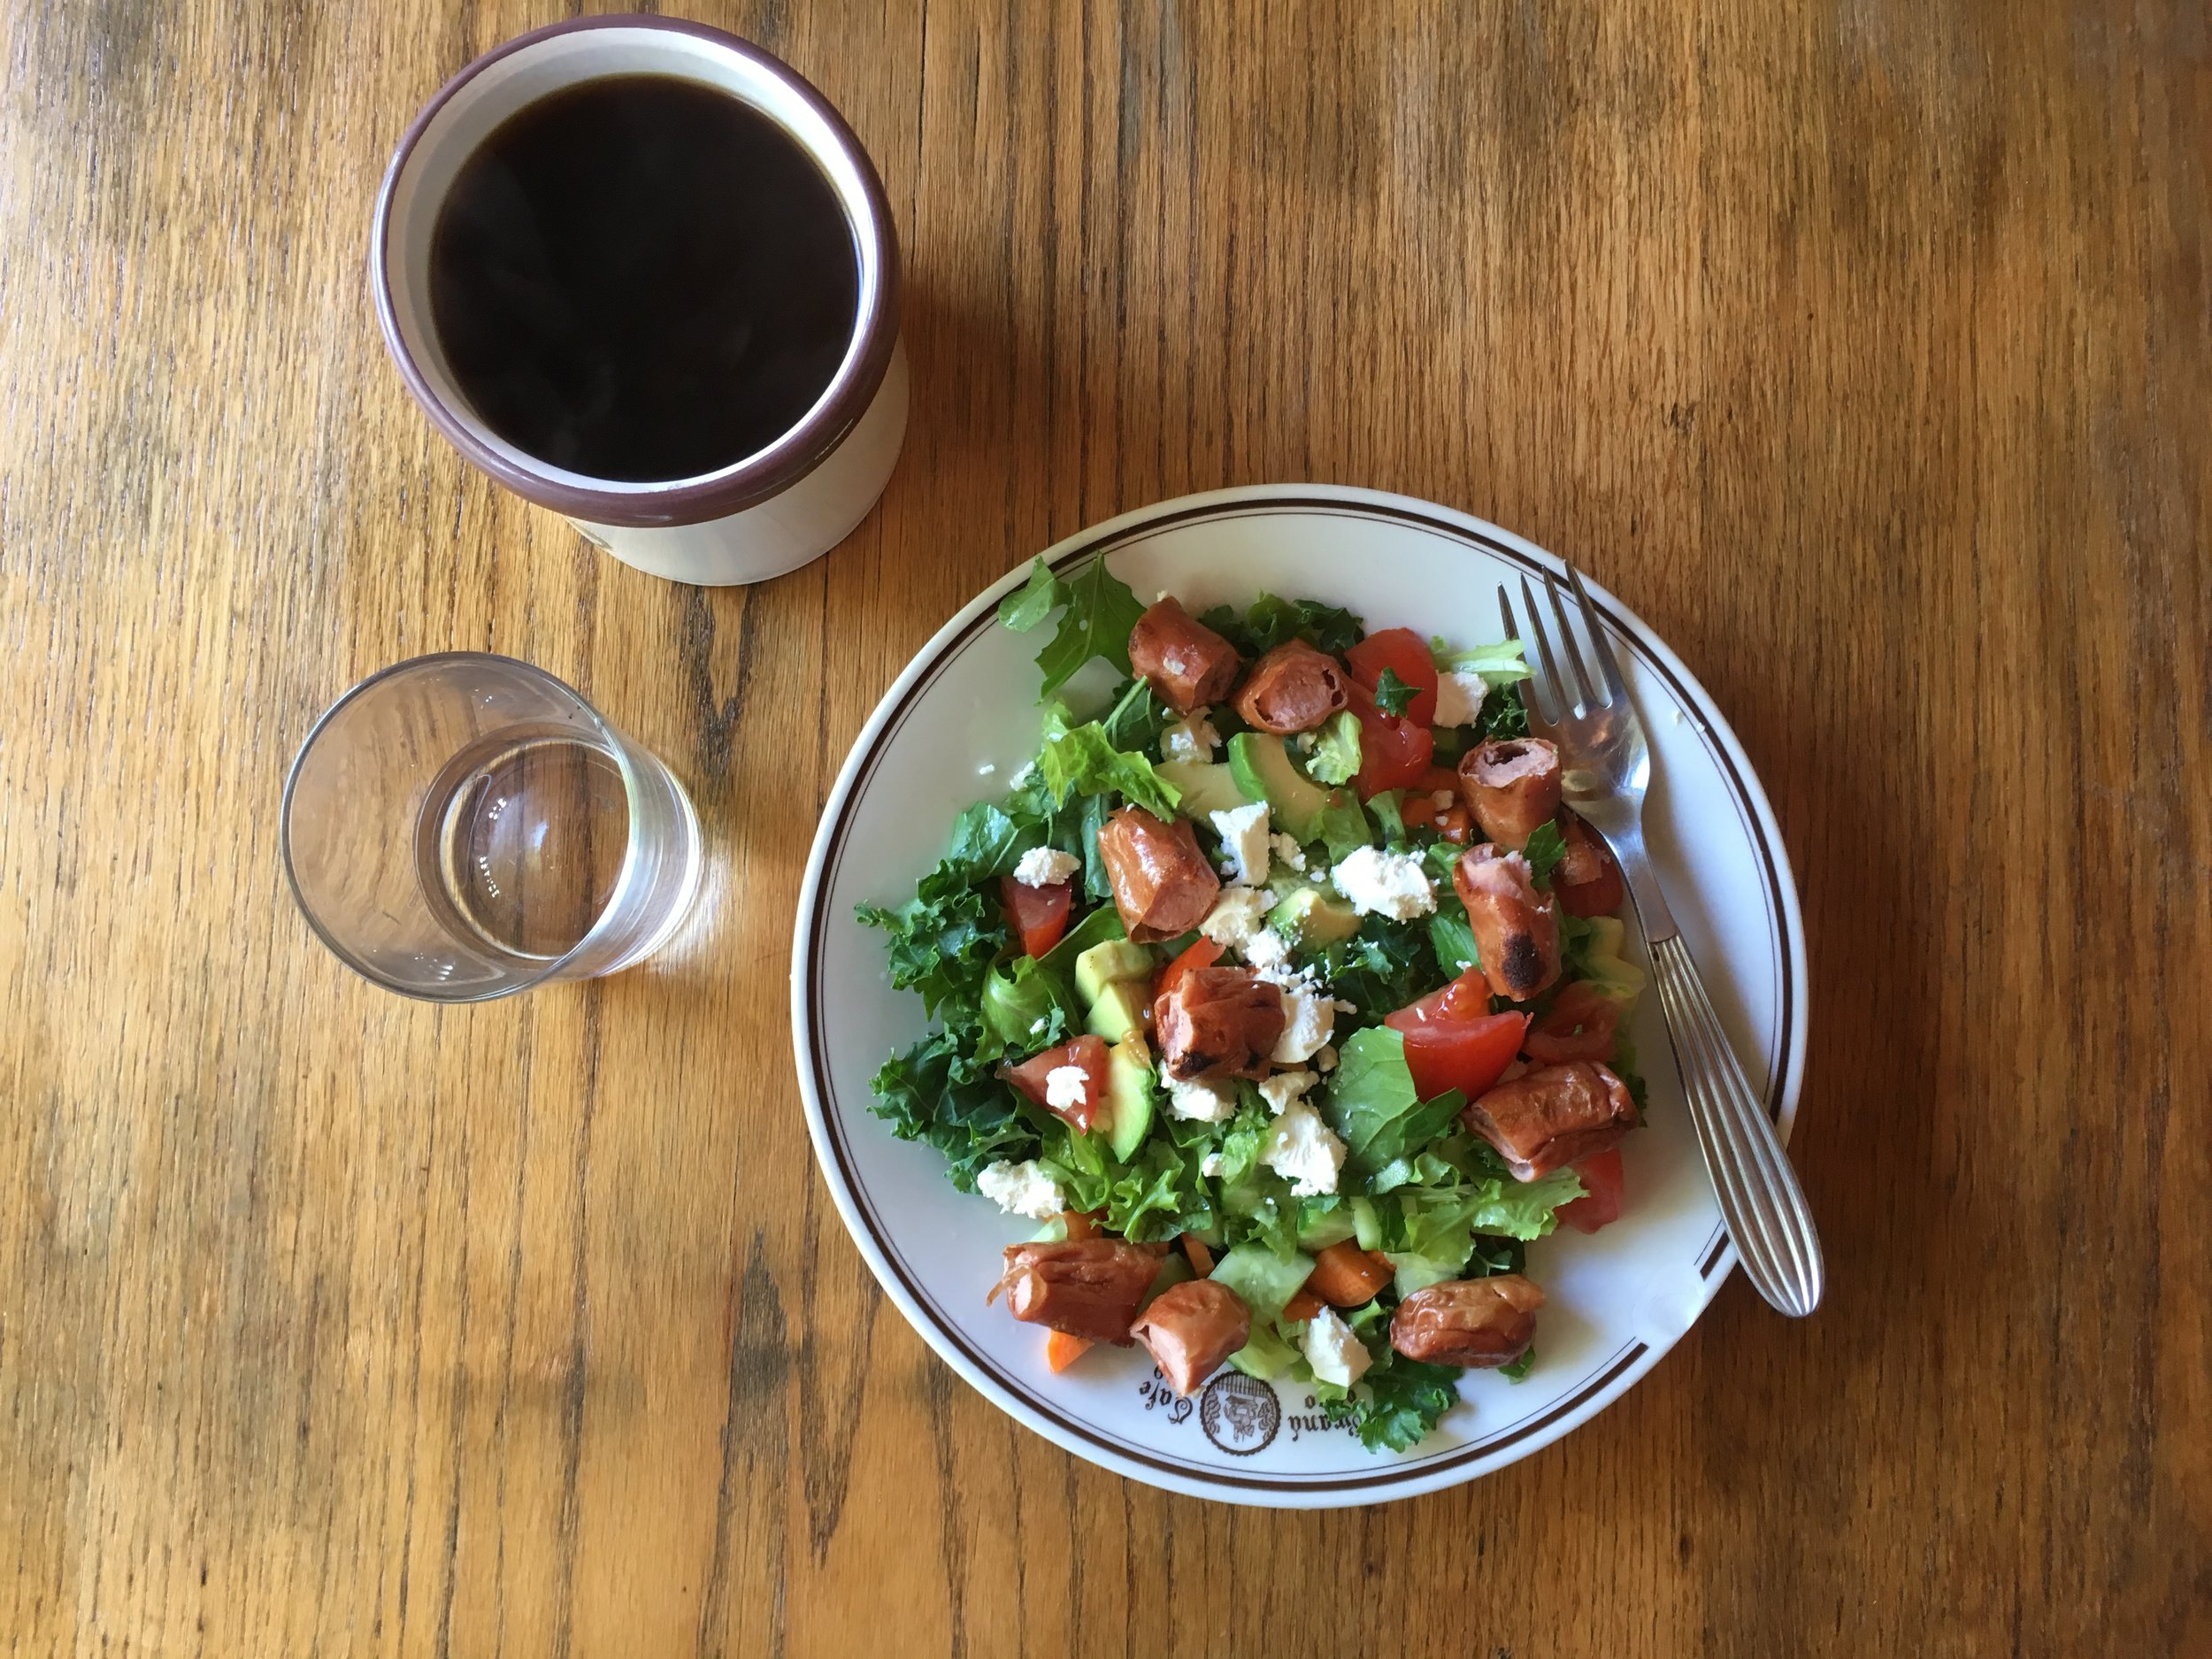 Tuesday Morning breakfast (at noon!): herbs and greens from the garden with chicken sausage, feta cheese, almonds and avocado.